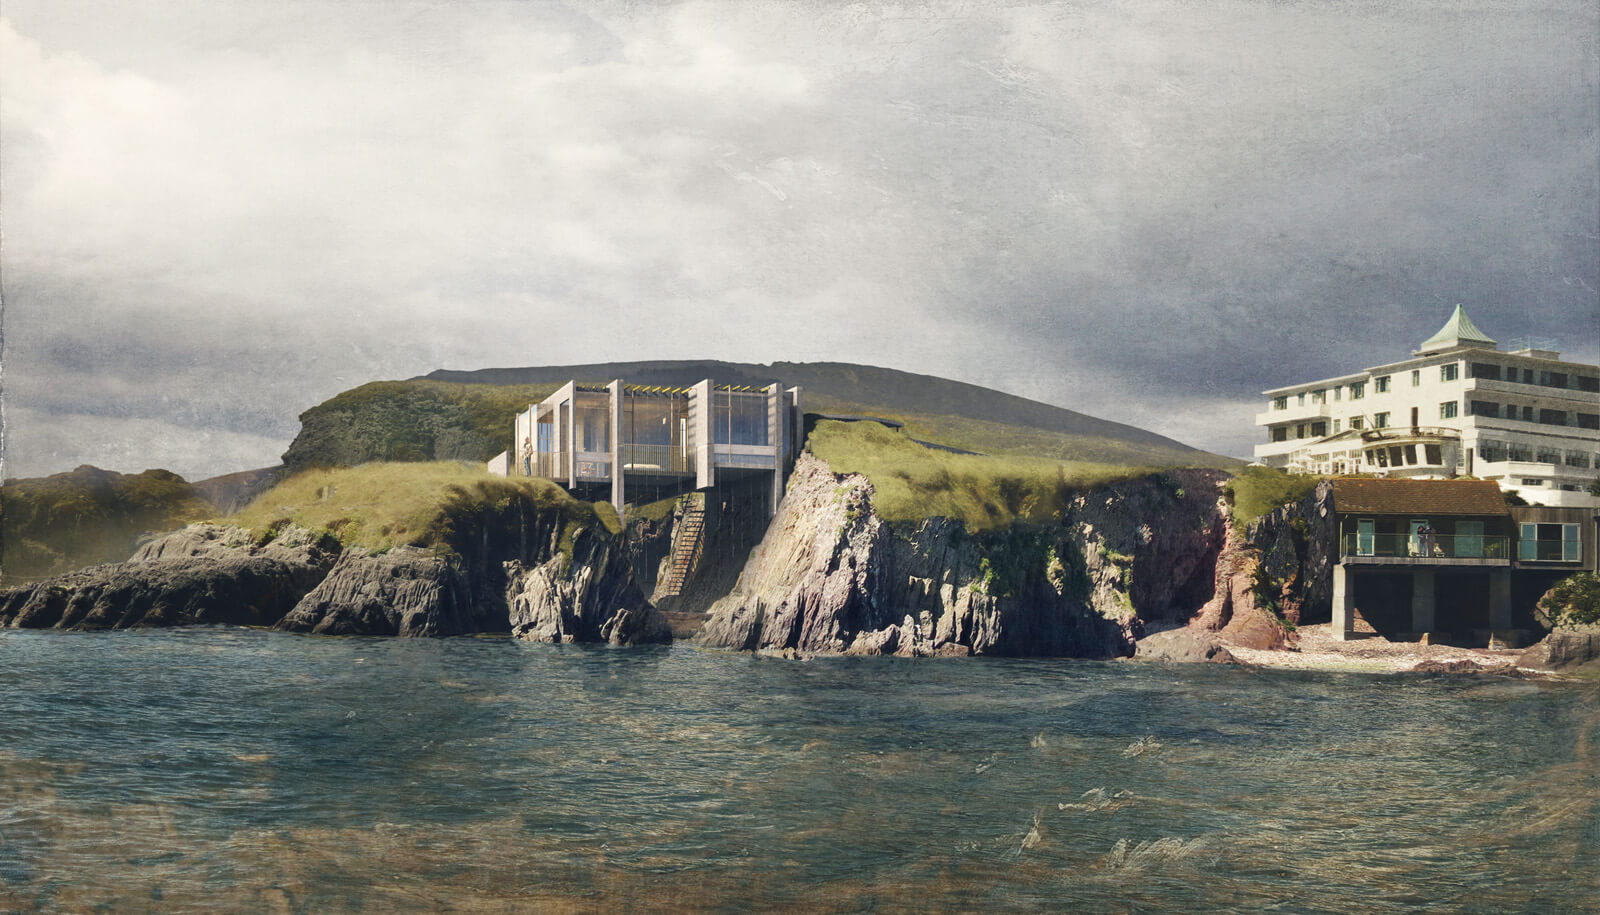 Burgh Island Competition